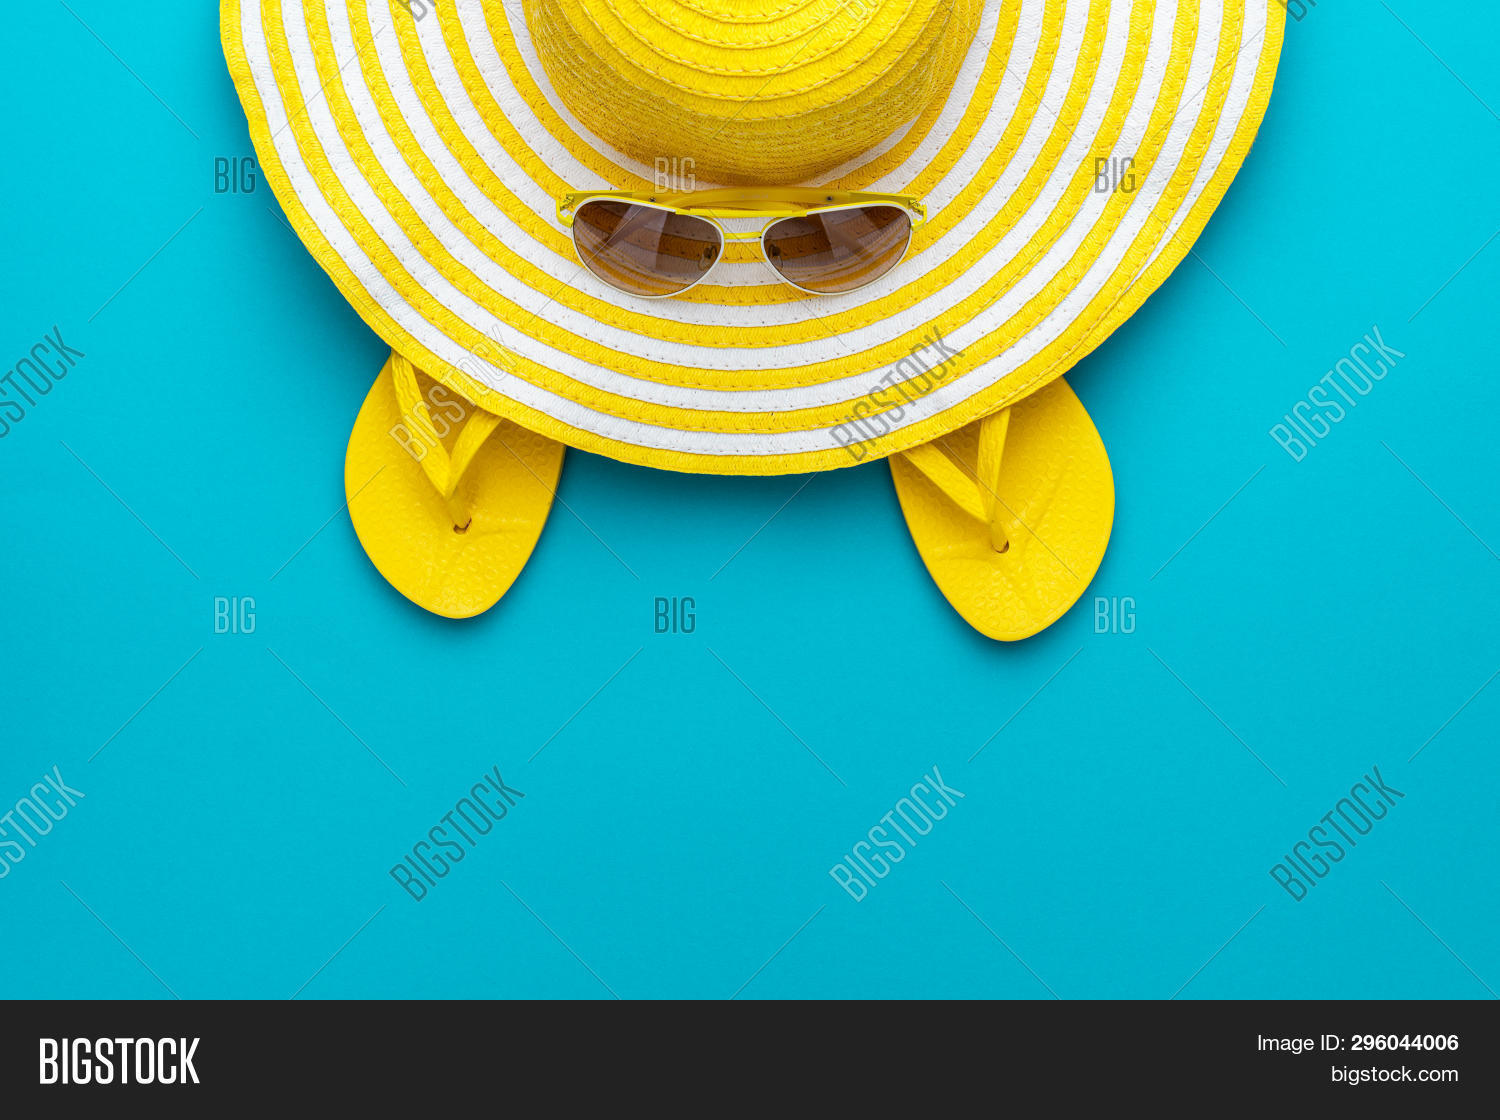 accessory,background,beach,blue,bright,casual,colorful,copyspace,cyan,elegance,eyes,eyewear,fashion,flip-flops,foot,footwear,hat,heat,holiday,hot,minimal,minimalist,ocean,optical,outfit,retro,sandals,sea,season,slippers,striped,style,stylish,summer,sun,sunglasses,sunlight,top,travel,trend,tropical,turquoise,vacation,vibrant,view,vintage,vivid,yellow